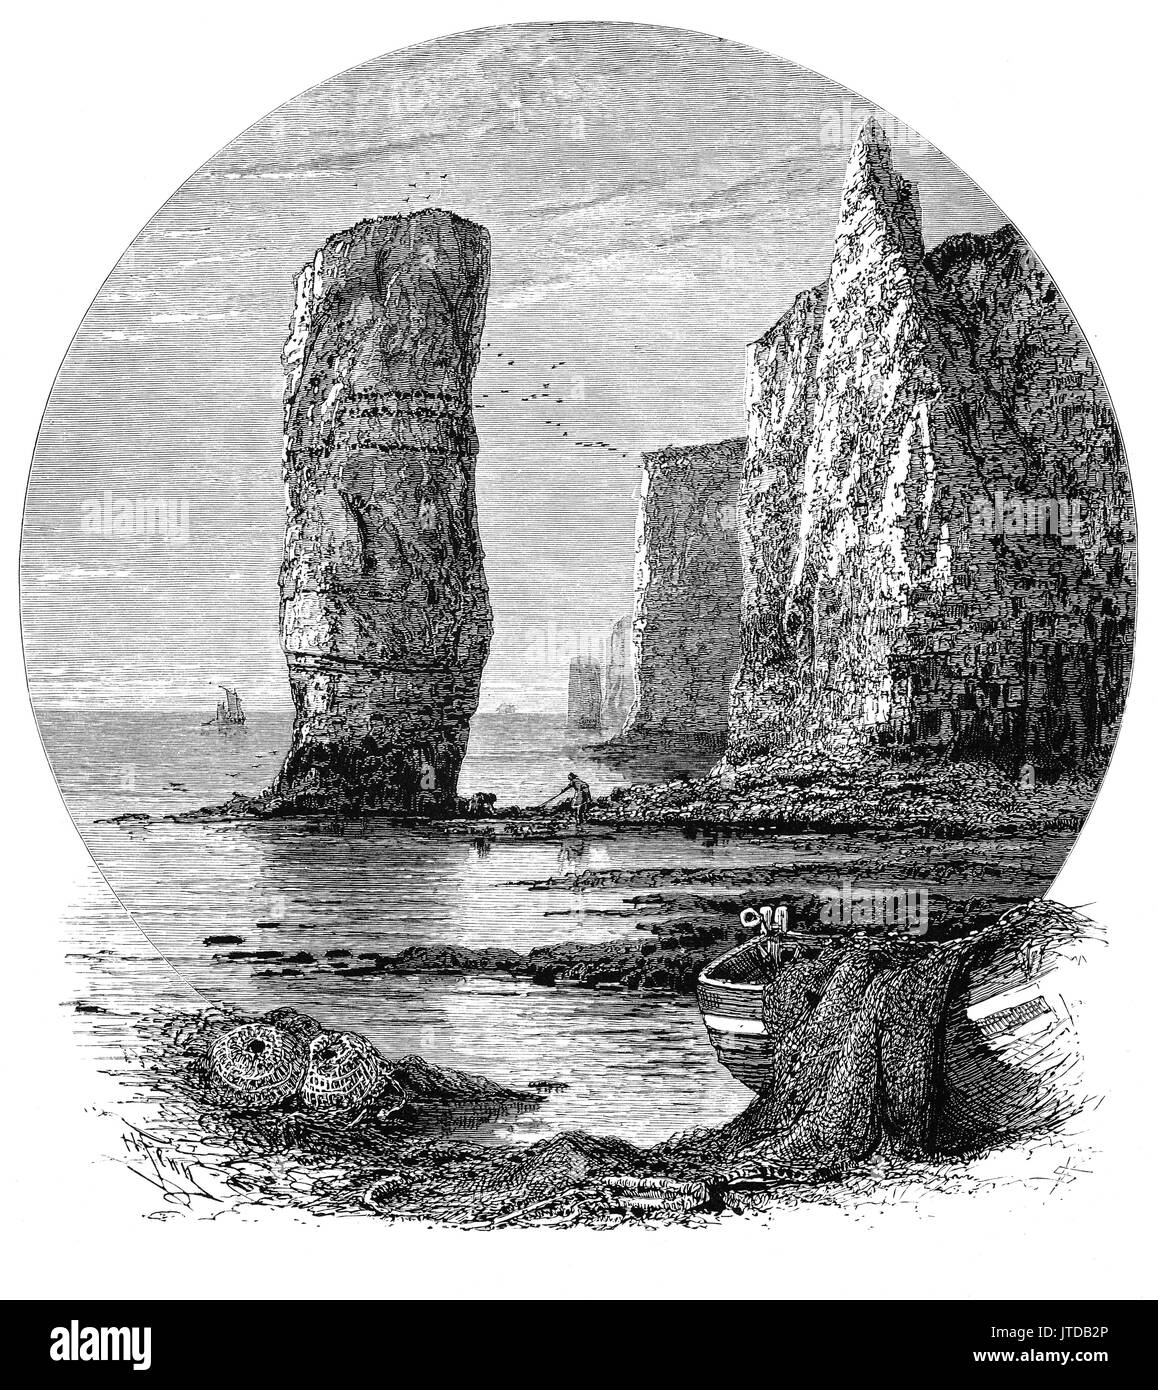 1870: Fishermen and boats near Old Harry Rocks, chalk formations, including a stack and a stump, located at Handfast Point, on the Isle of Purbeck in Dorset, England. They mark the most easterly point of the Jurassic Coast, a UNESCO World Heritage Site. - Stock Image